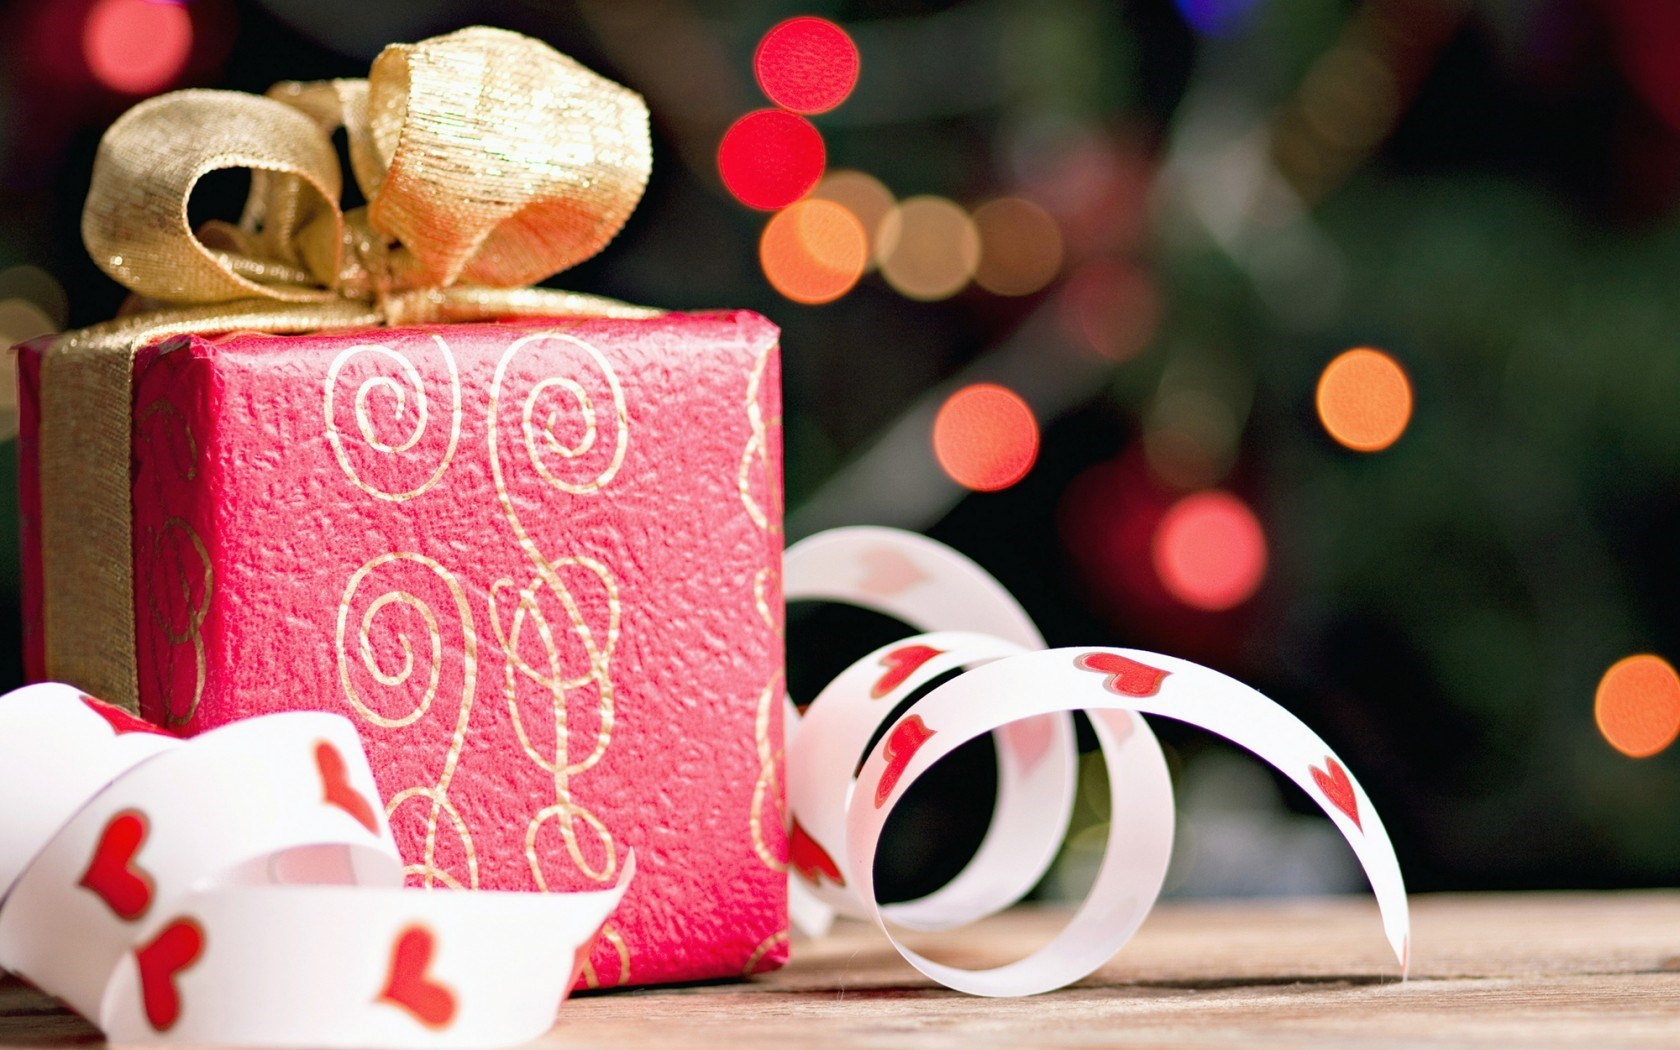 Beautiful Love Gift Wallpaper : merry christmas wallpapers gift box - HD Desktop Wallpapers 4k HD